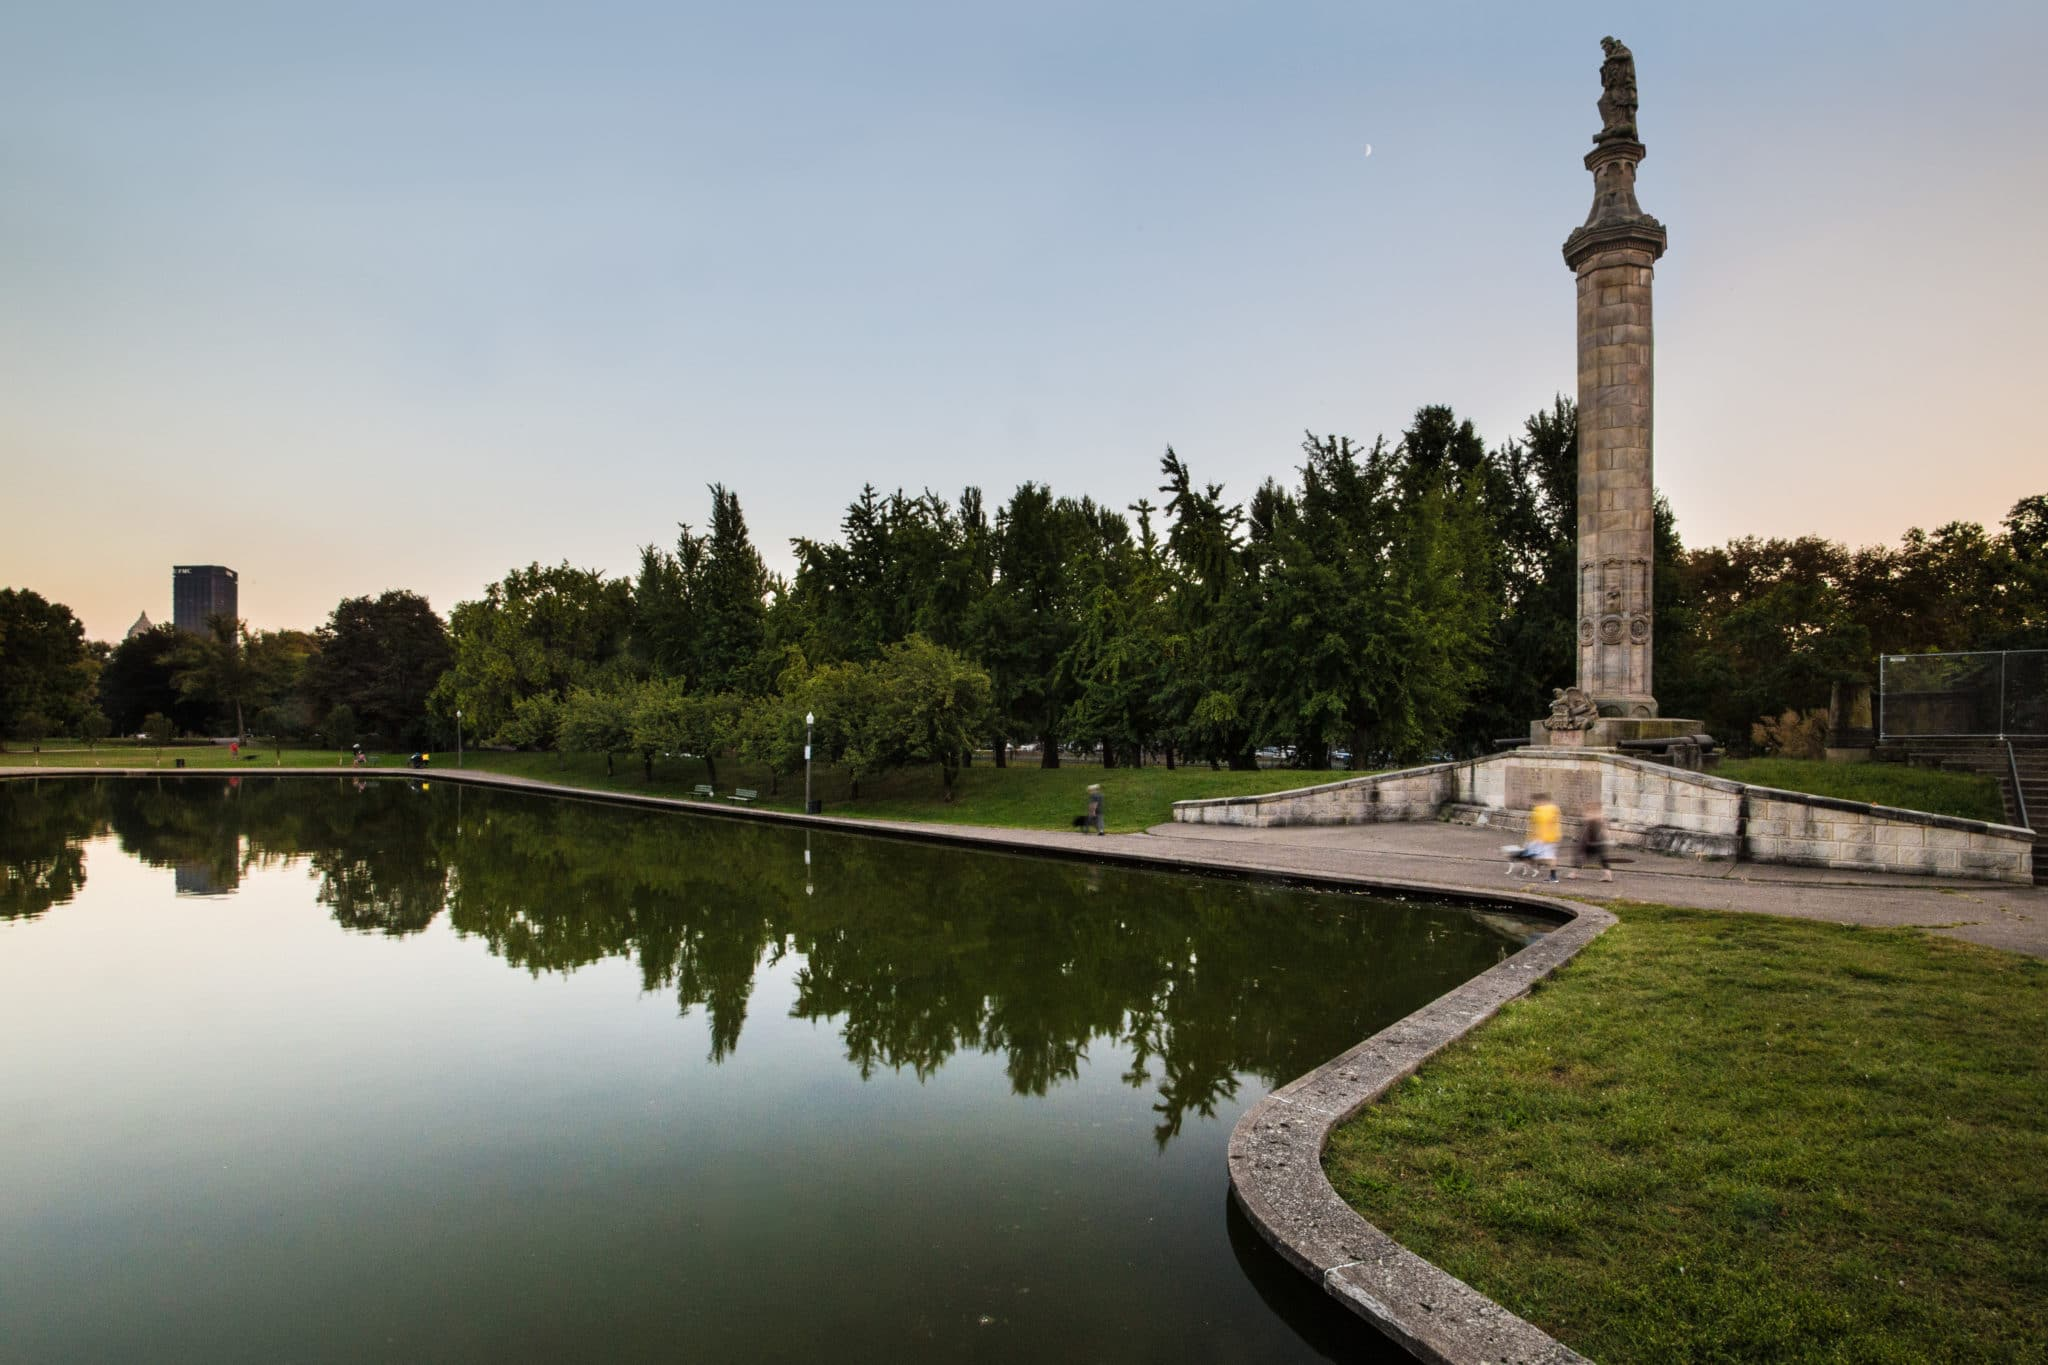 An image of Allegheny Commons Lake Elizabeth including a tall statue at sunset.